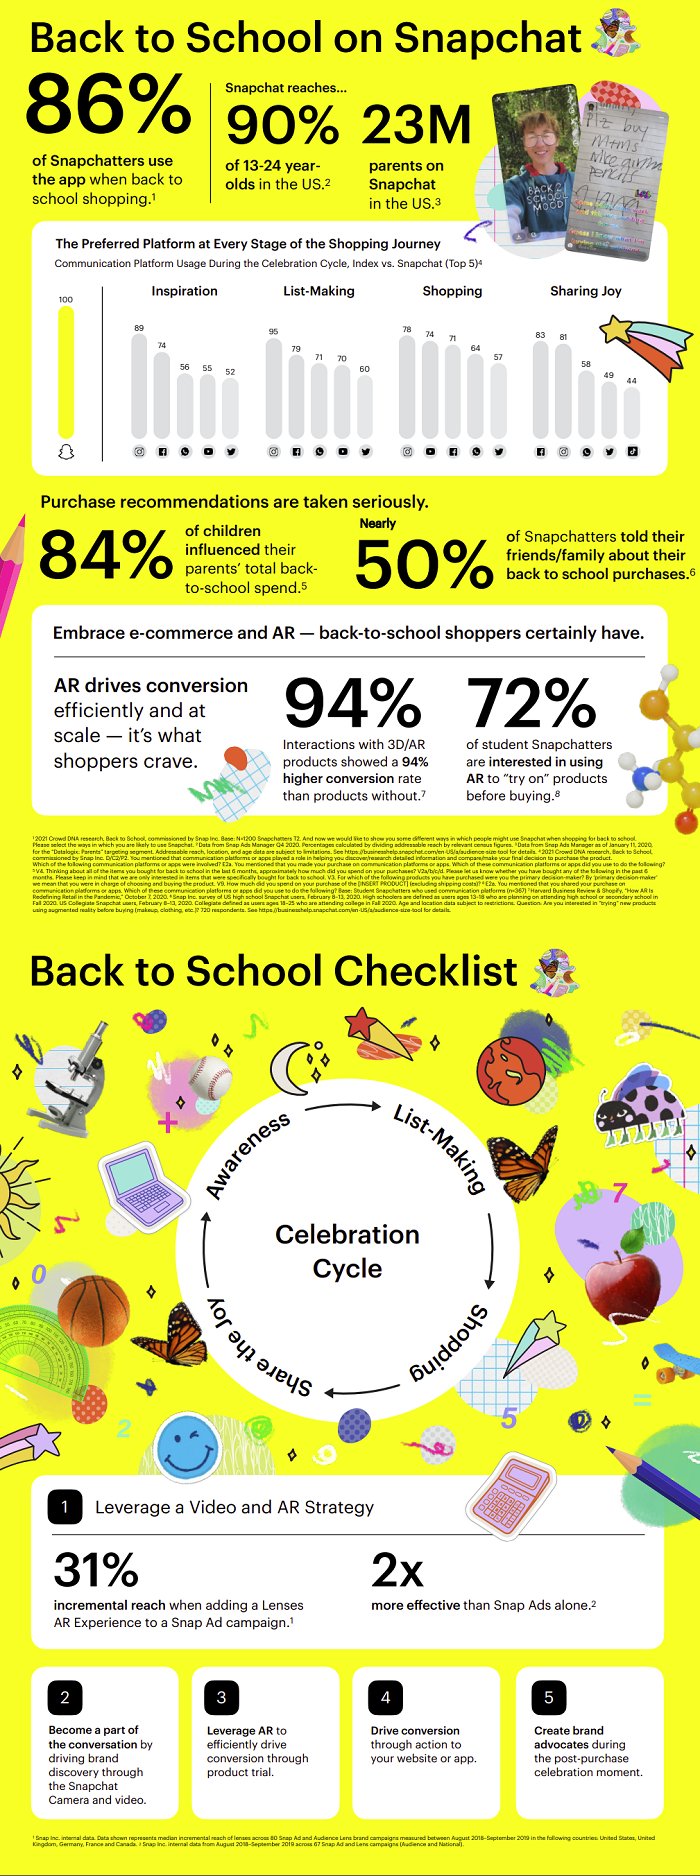 Snapchat back to school checklist